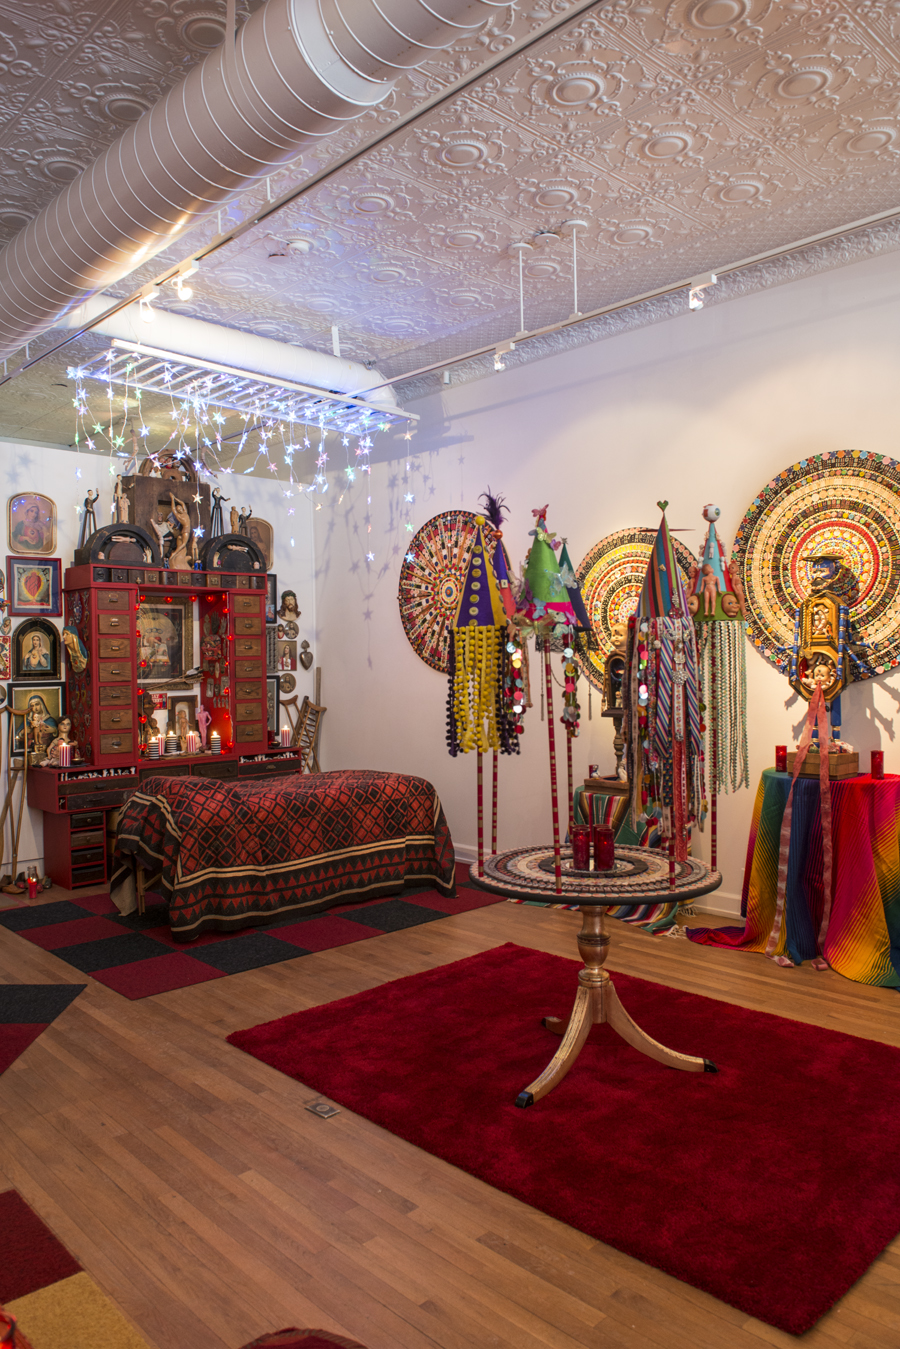 """Altar of Containment and Memory\"", mandalas and figures, and \""Table of Crowns\"" in the therapeutic bodywork area of the Sacred Backroom."